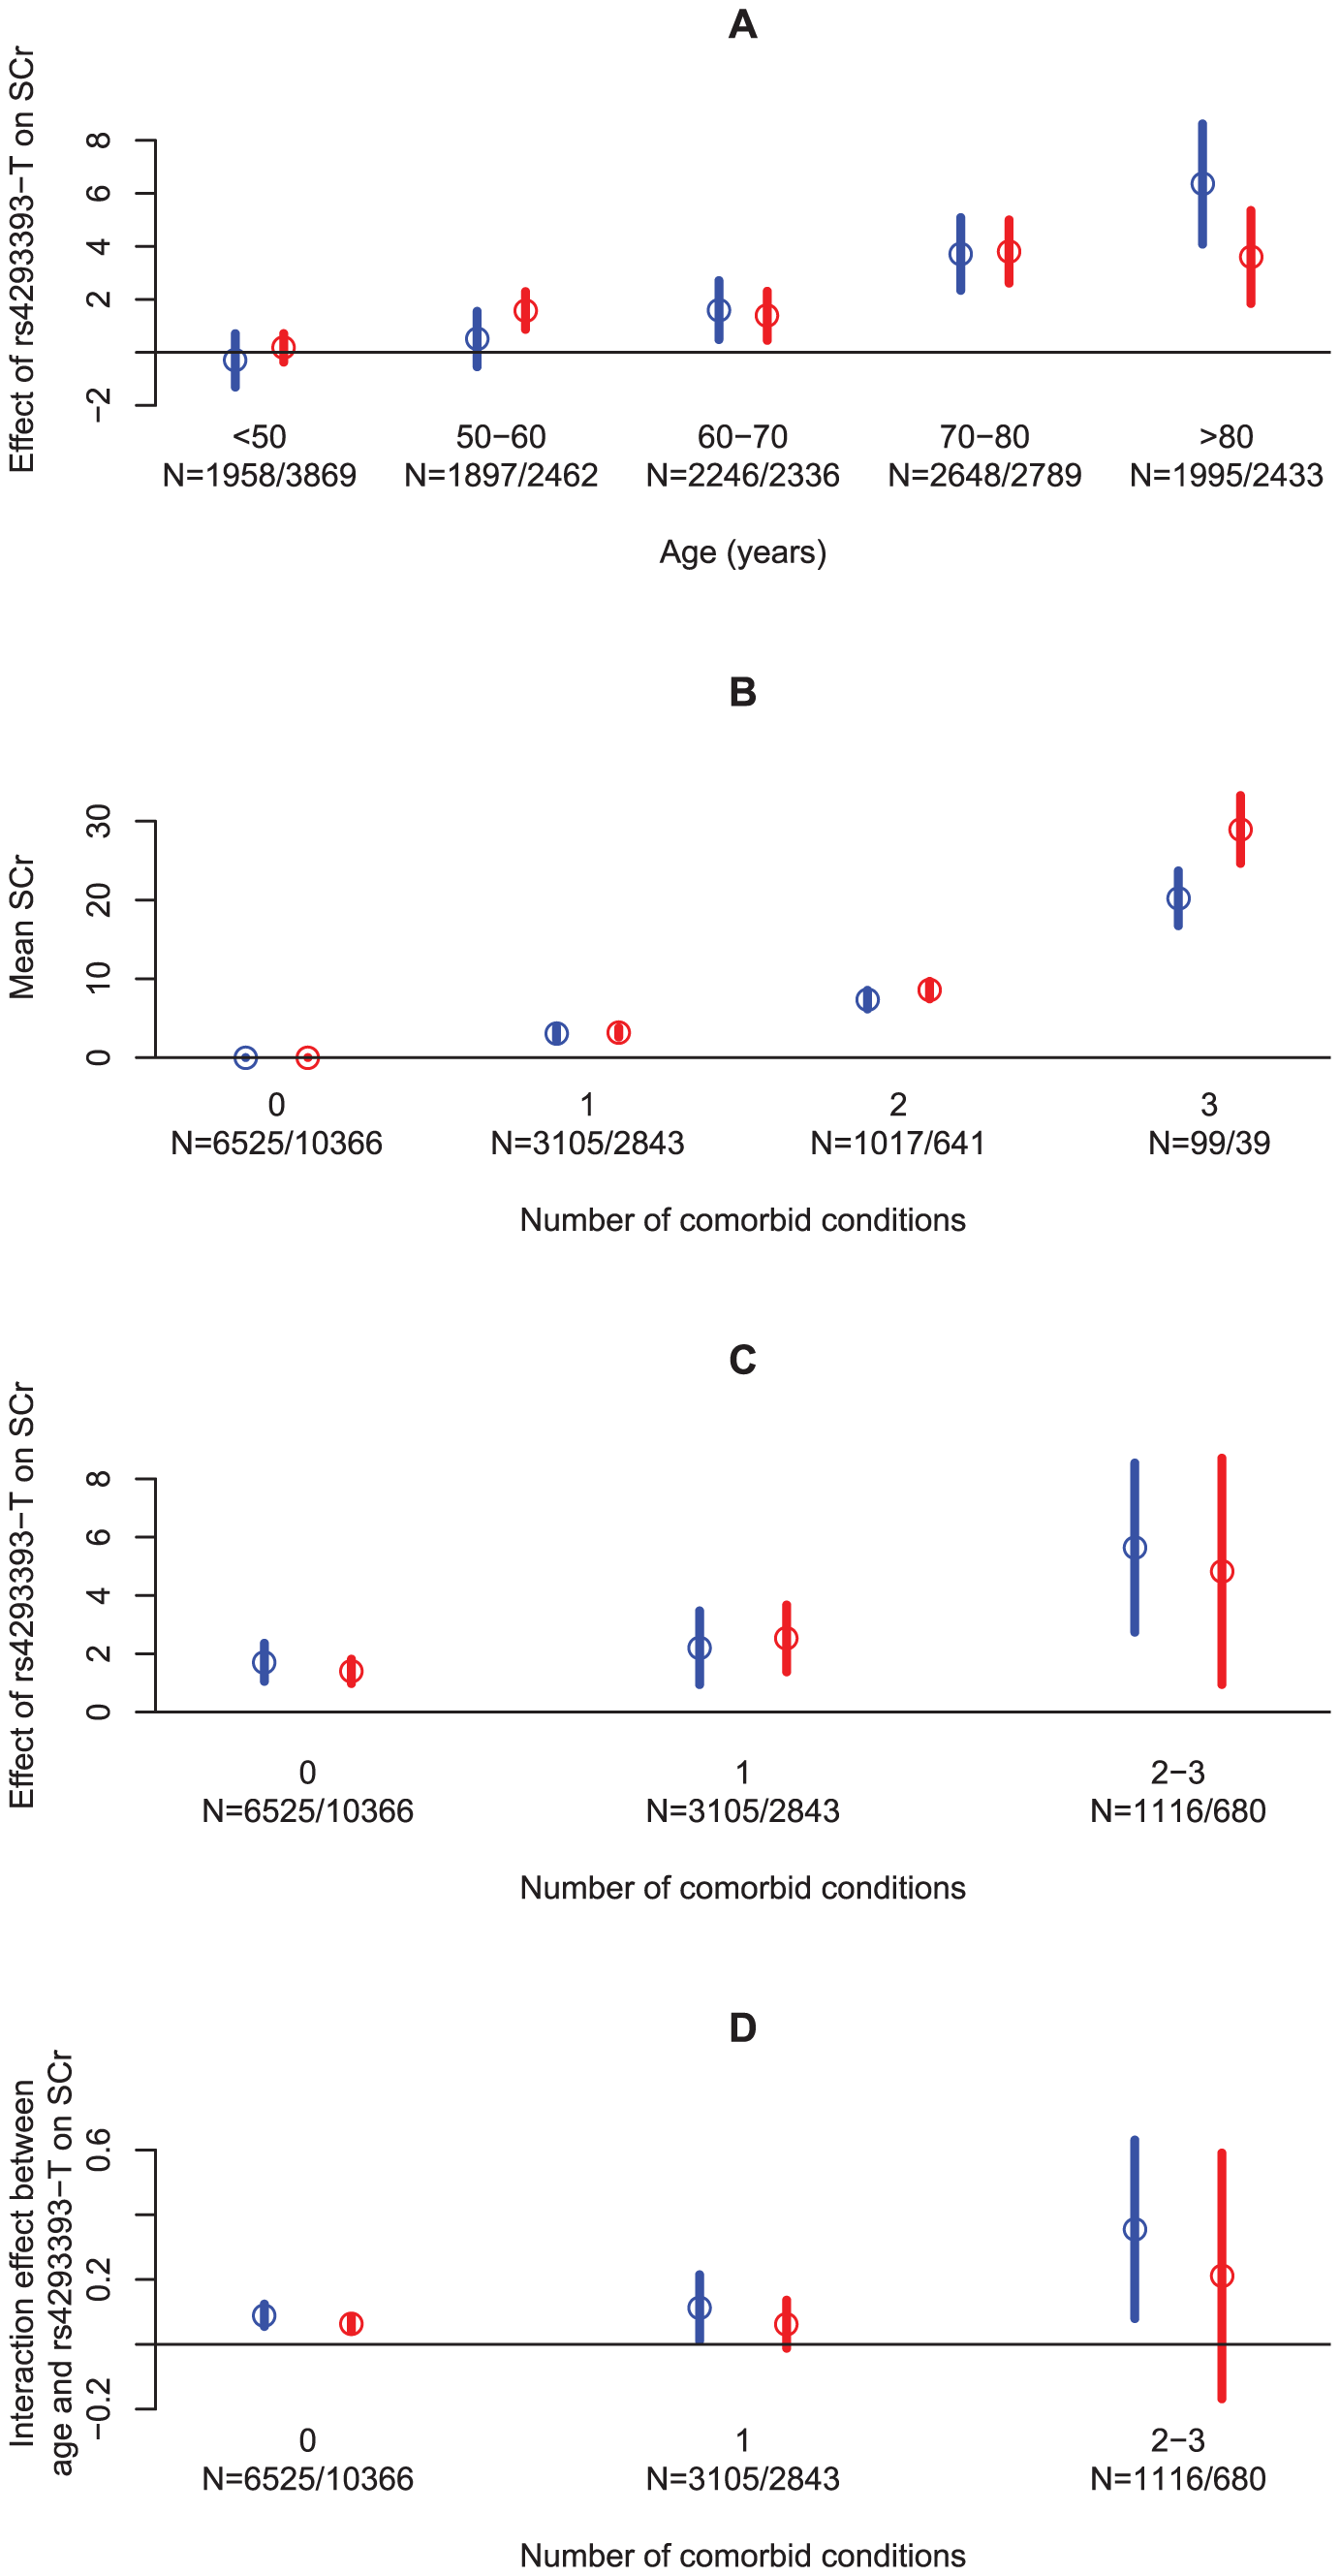 An overview of the effect of age and the number of comorbid conditions on SCr levels, directly and through the rs4293393-T allele count.